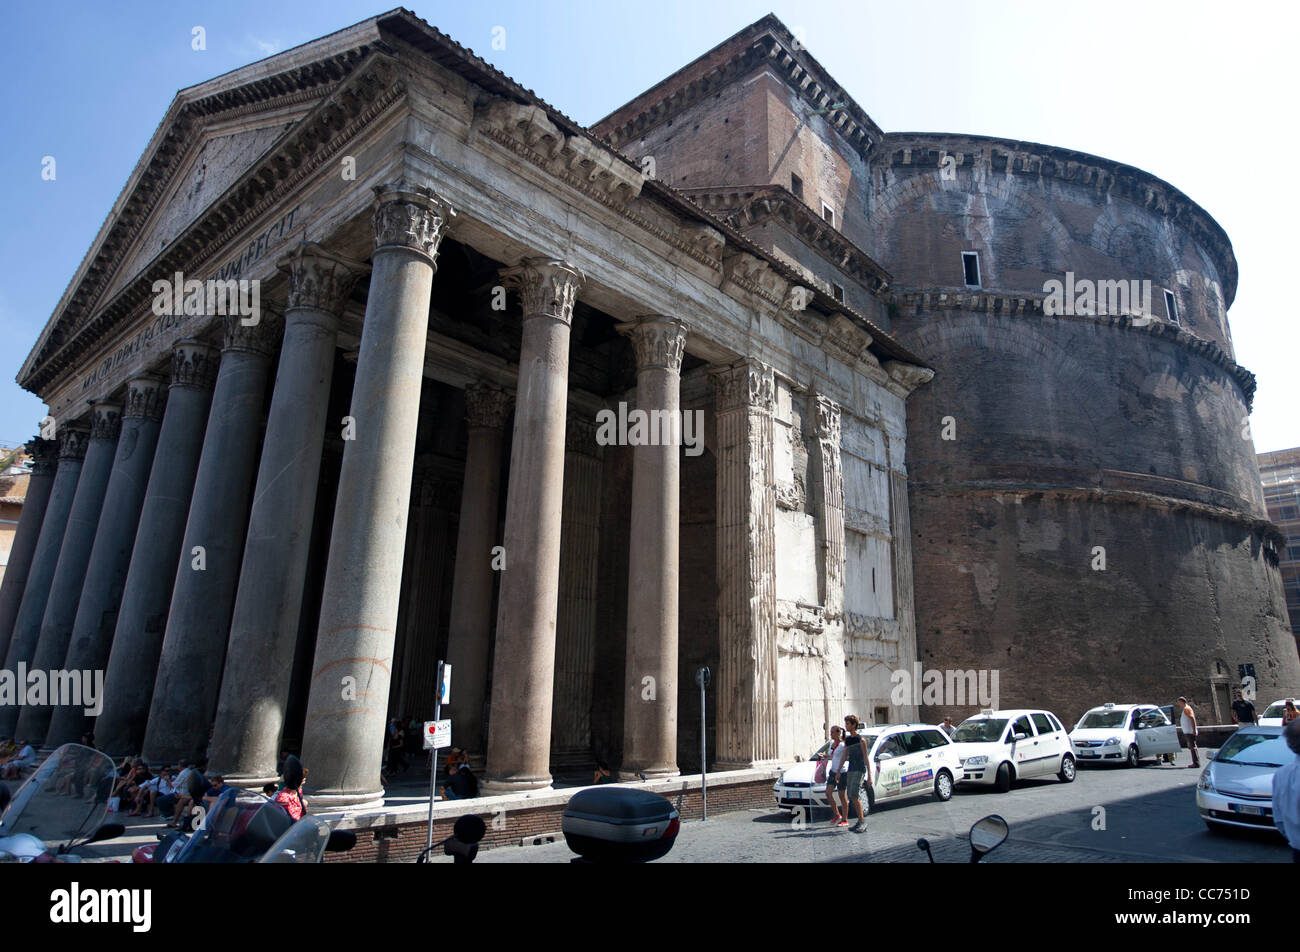 the pantheon temple dedicated to all 11 monumental facts about the pantheon the origins of the word pantheon are greek and refer to a temple dedicated to all the gods (pan=all and theon=gods.